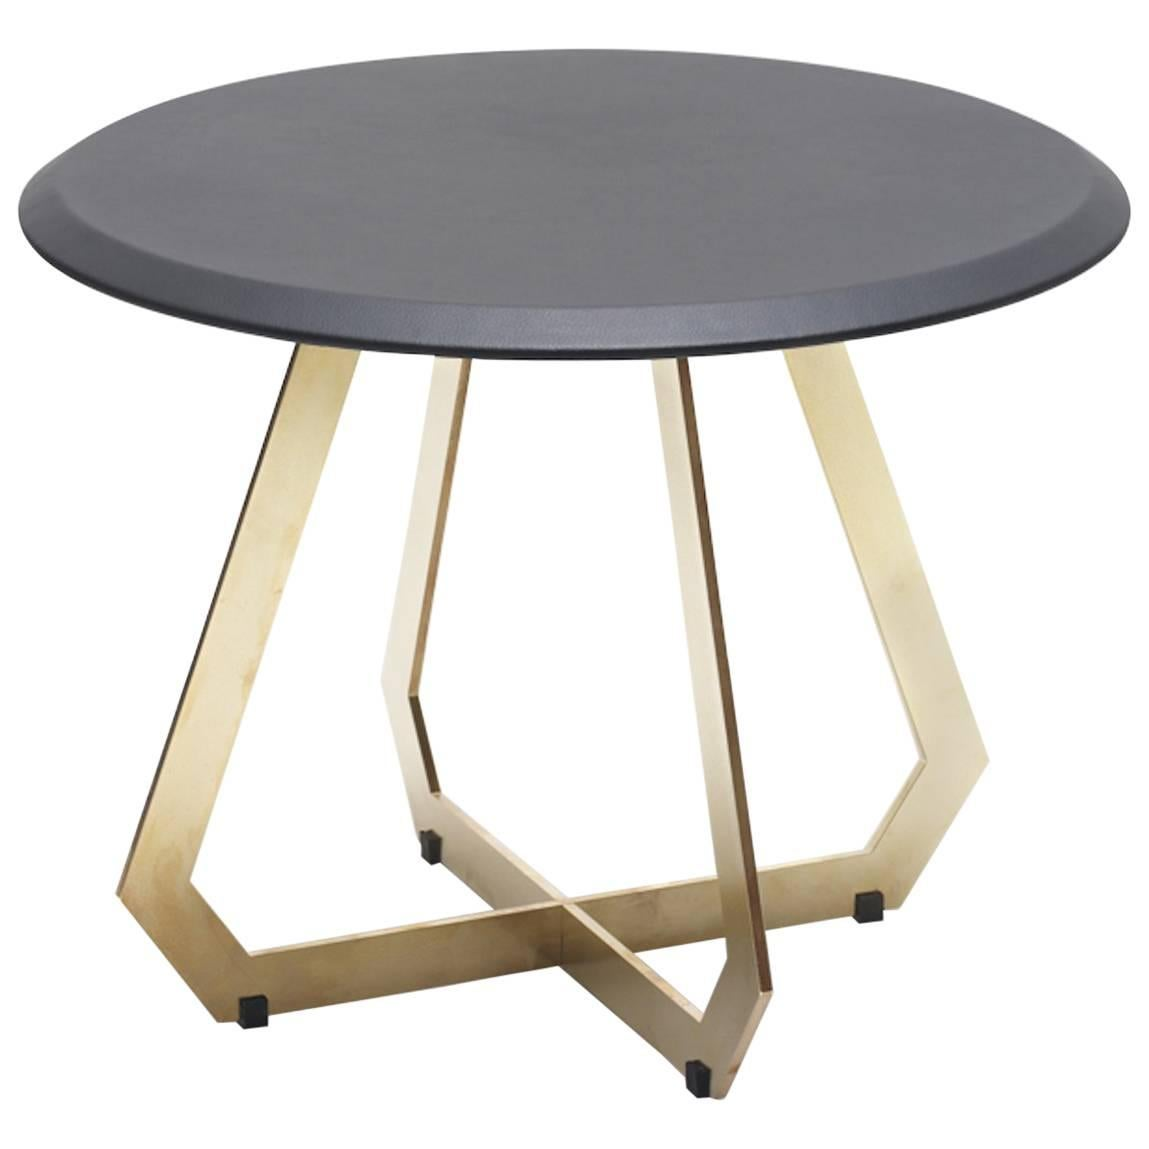 Beau Fetish Table In Leather And Brass, Side Table, Small For Sale